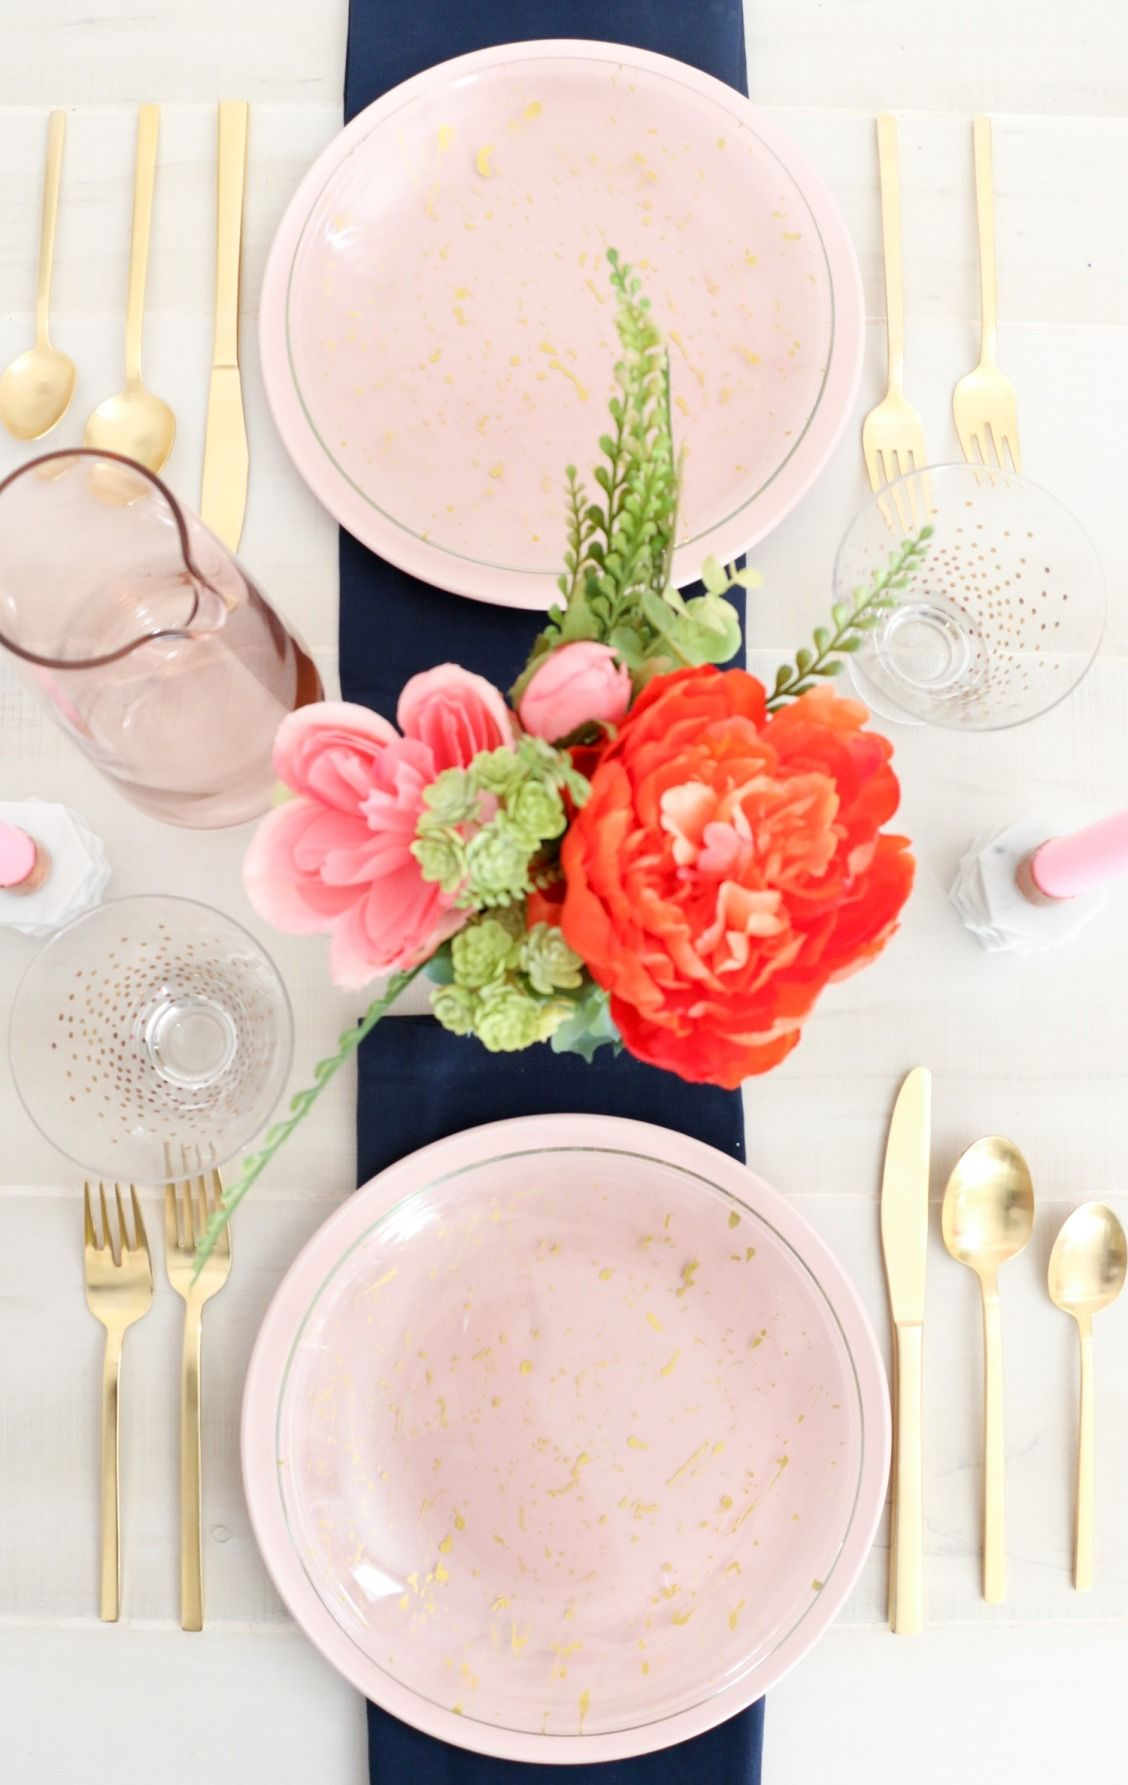 Can't wait to make these DIY gold splattered plates! They will instantly add a chic look to the table.